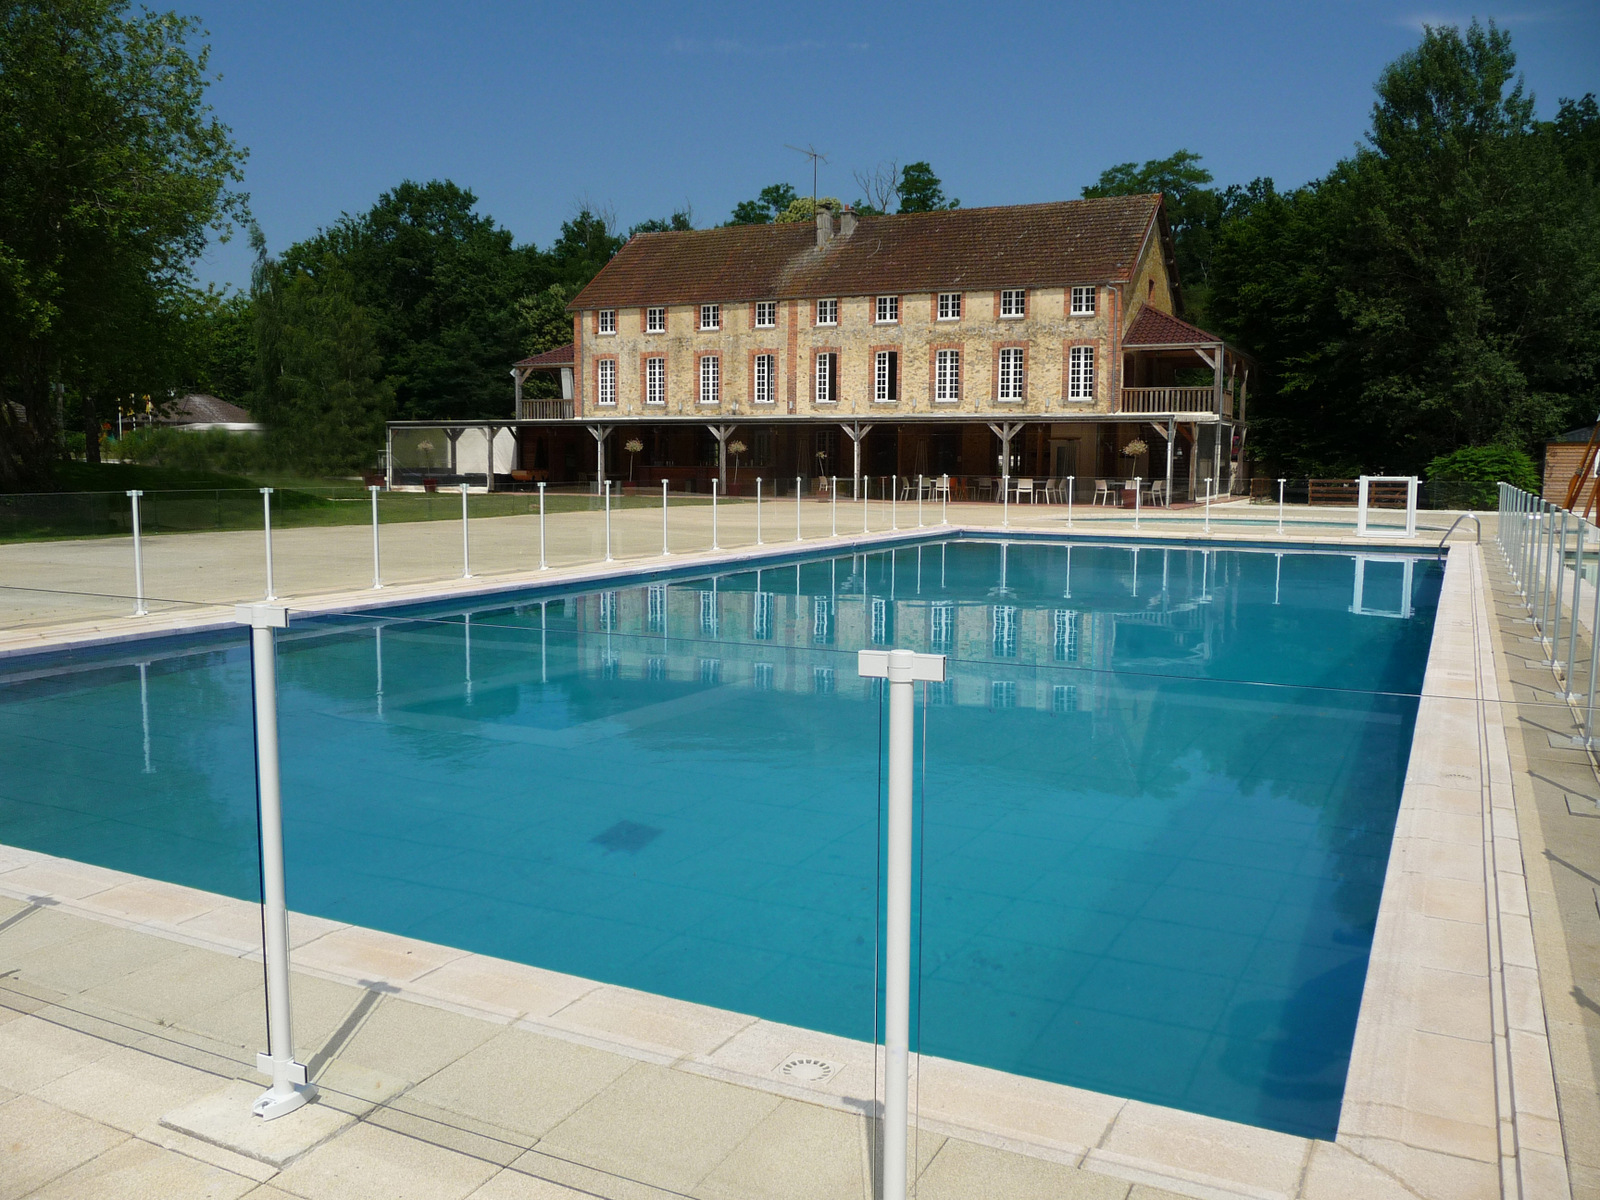 Barri re de piscine en aluminium et protection aluminium for Barriere de protection piscine